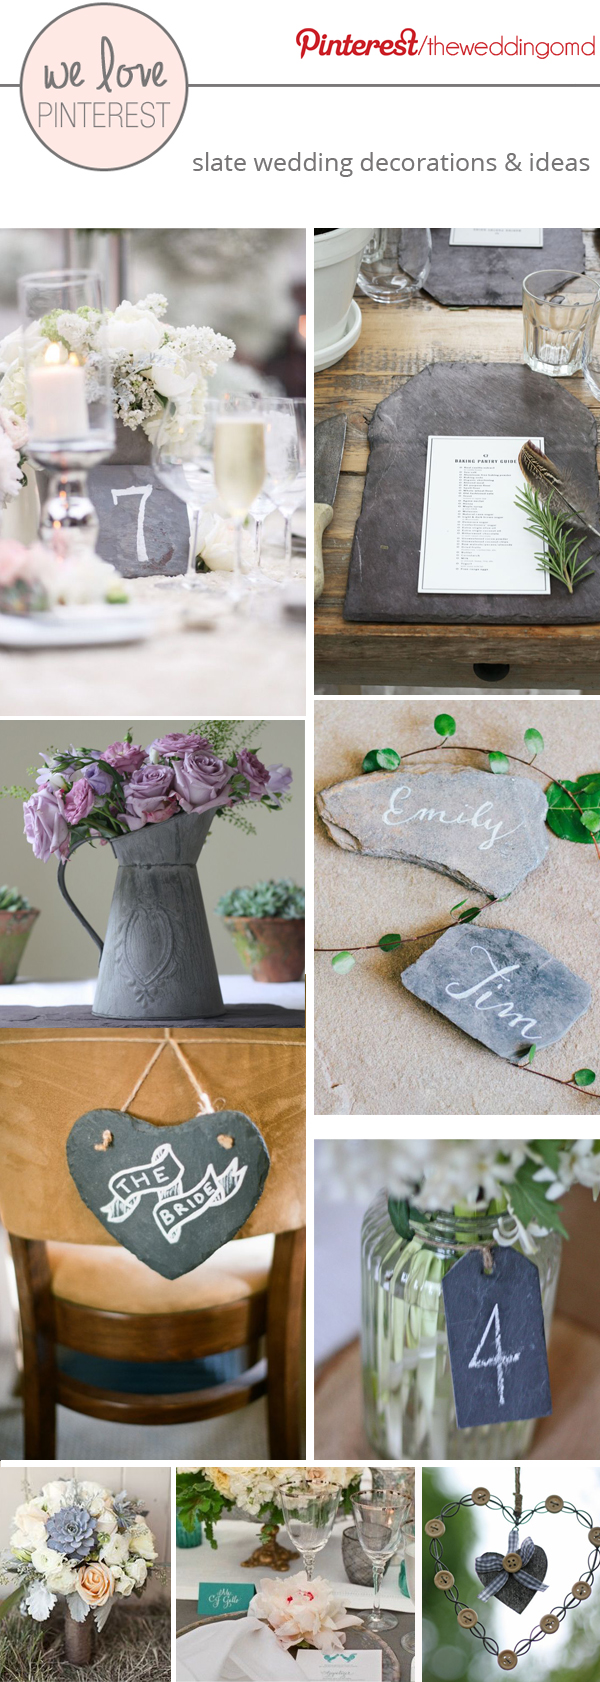 slate wedding decorations place cards table numbers signs